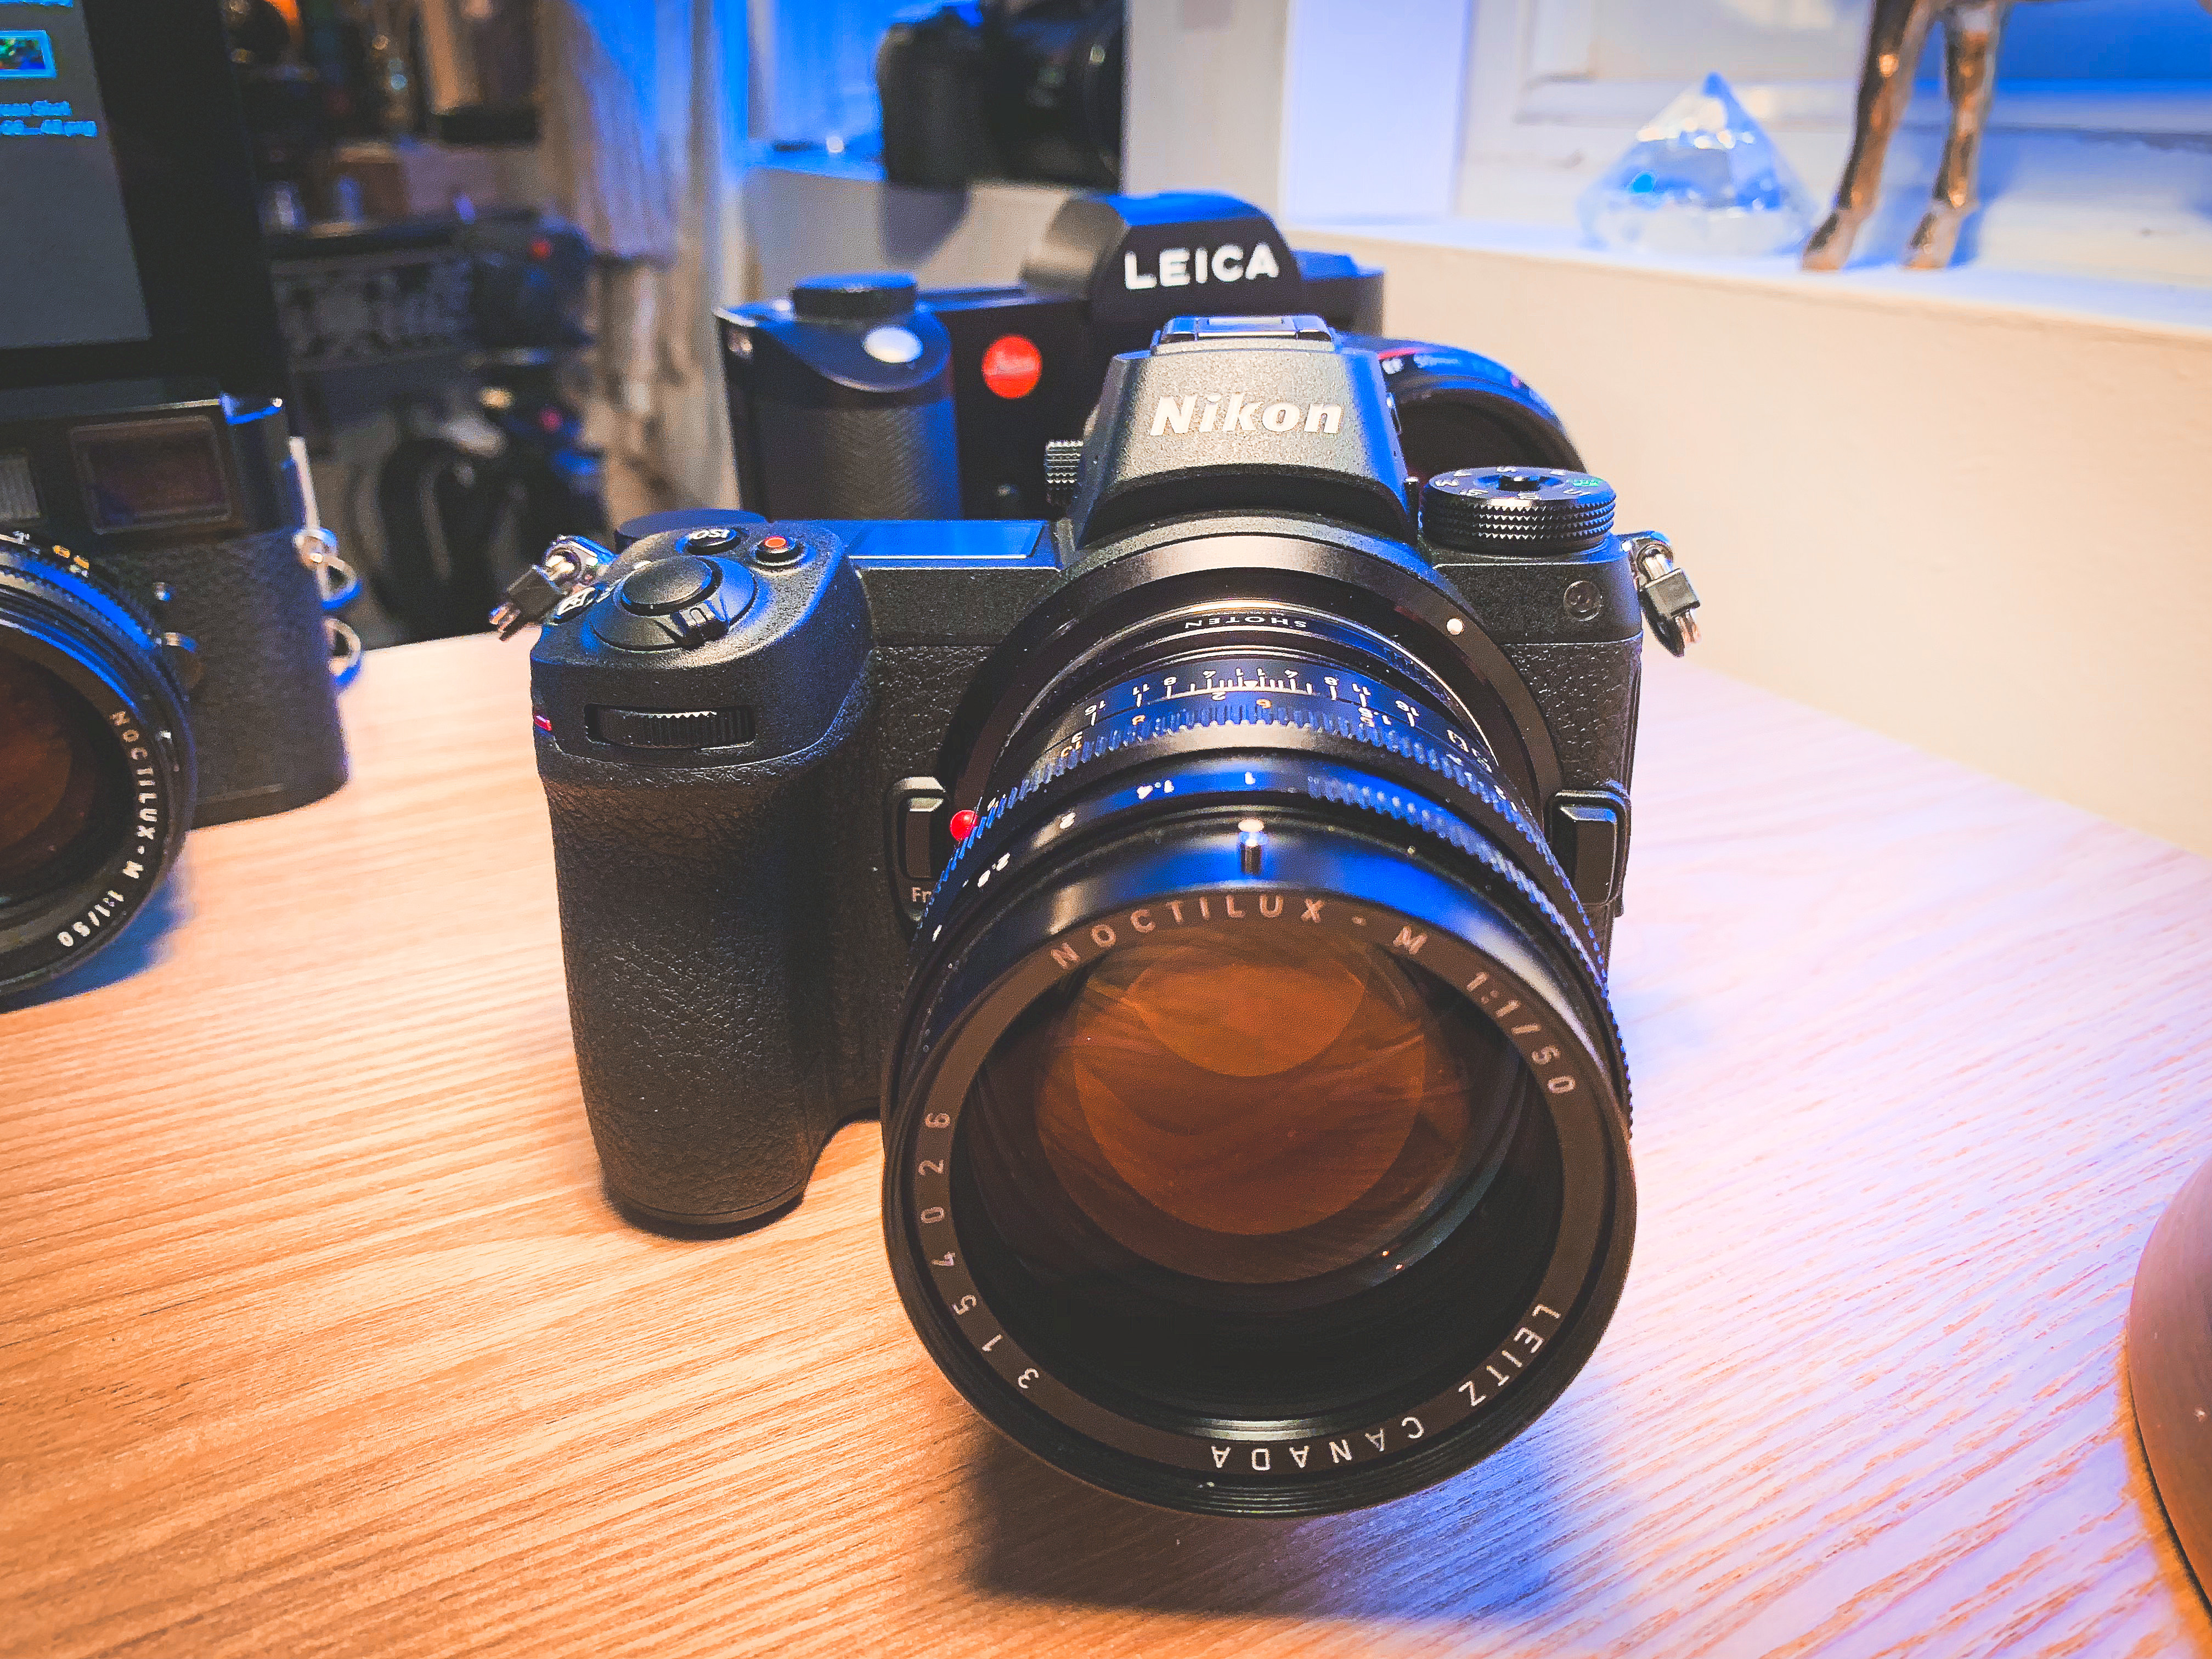 First ever shots from the Nikon Z7 at F1 0 with Leica